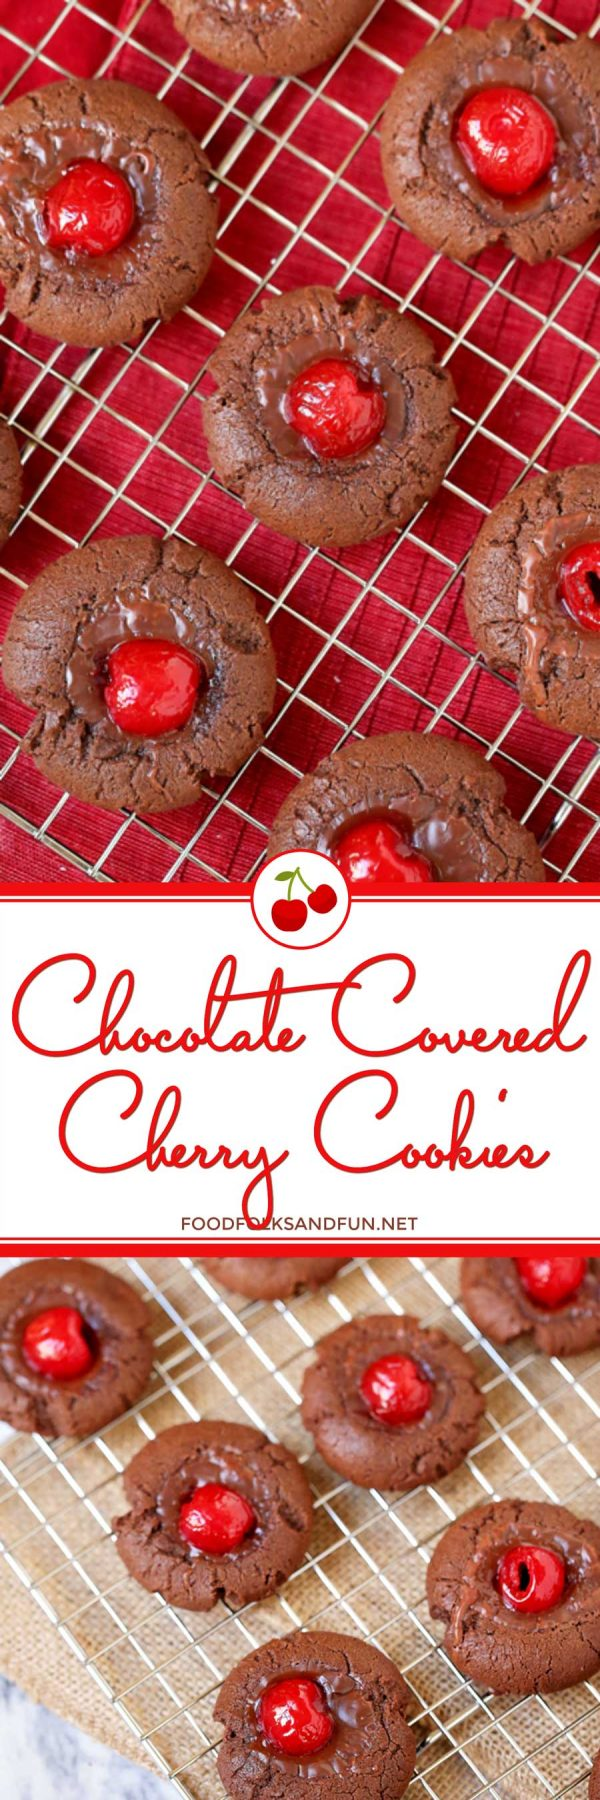 Best Chocolate Covered Cherry Cookies